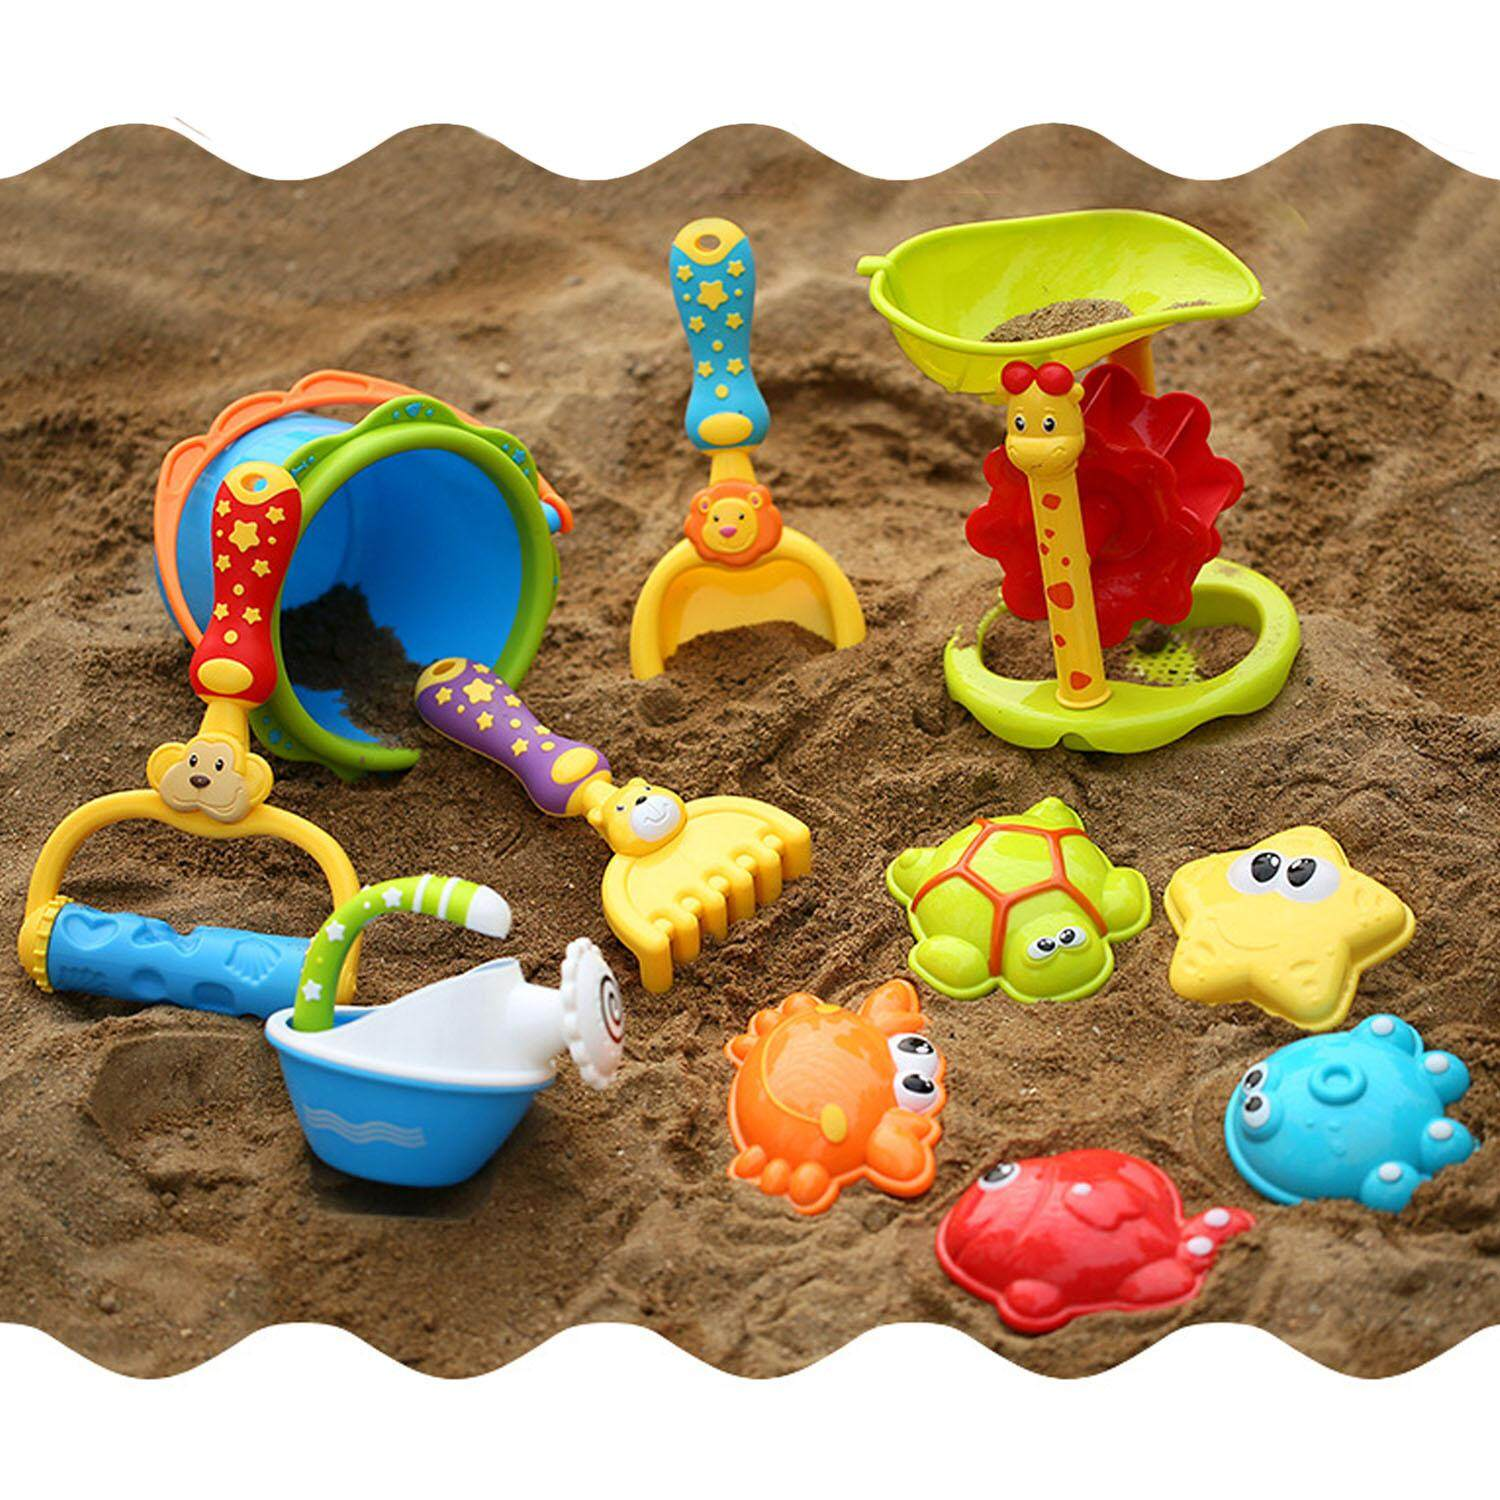 Sand & Water Tables - Buy Sand & Water Tables at Best Price in ...